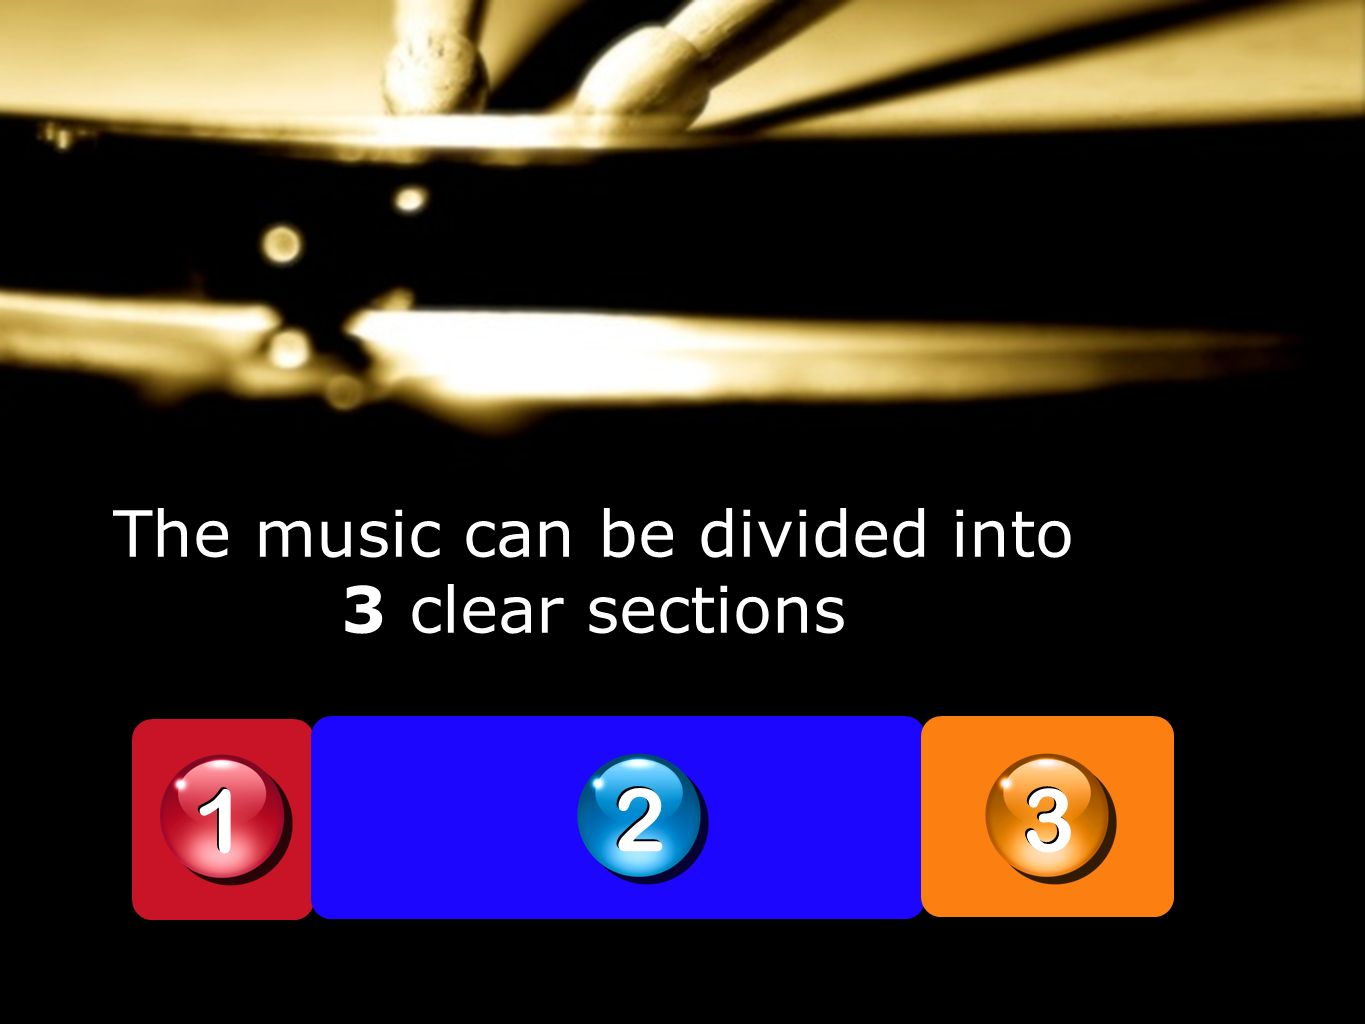 1 1 2 2 3 3 The music can be divided into 3 clear sections